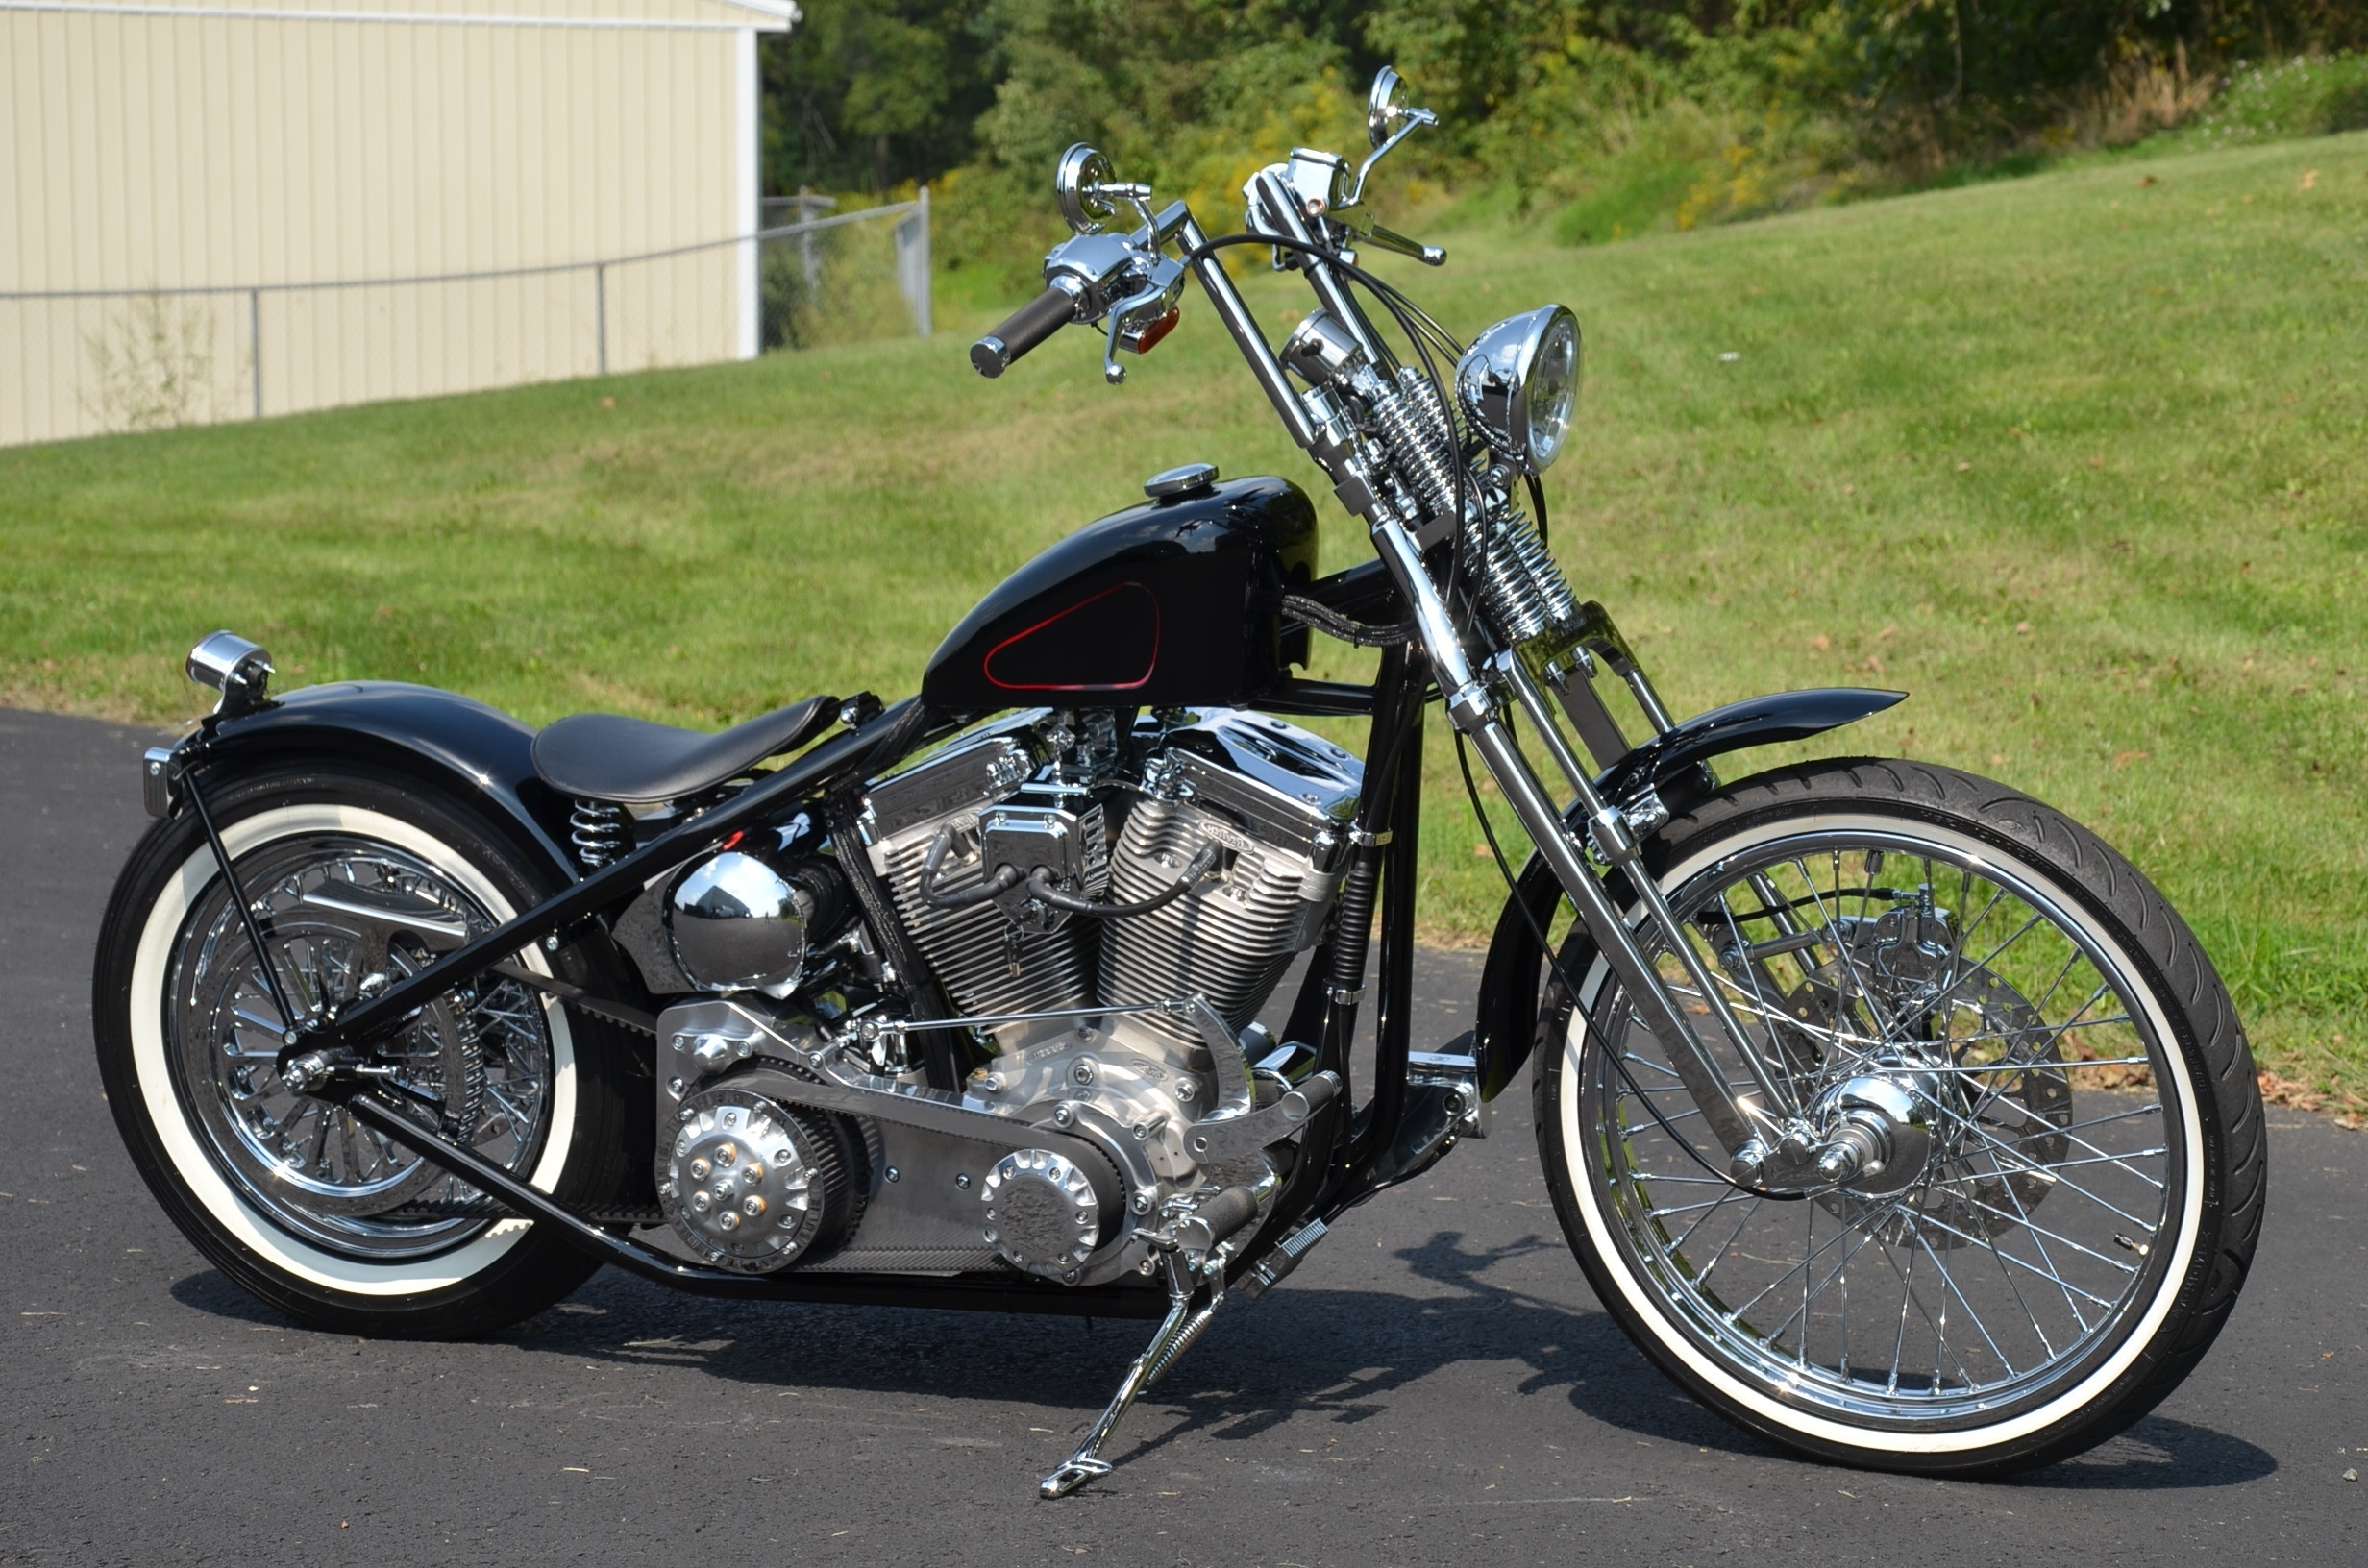 bobber motorcycle high quality wallpapers